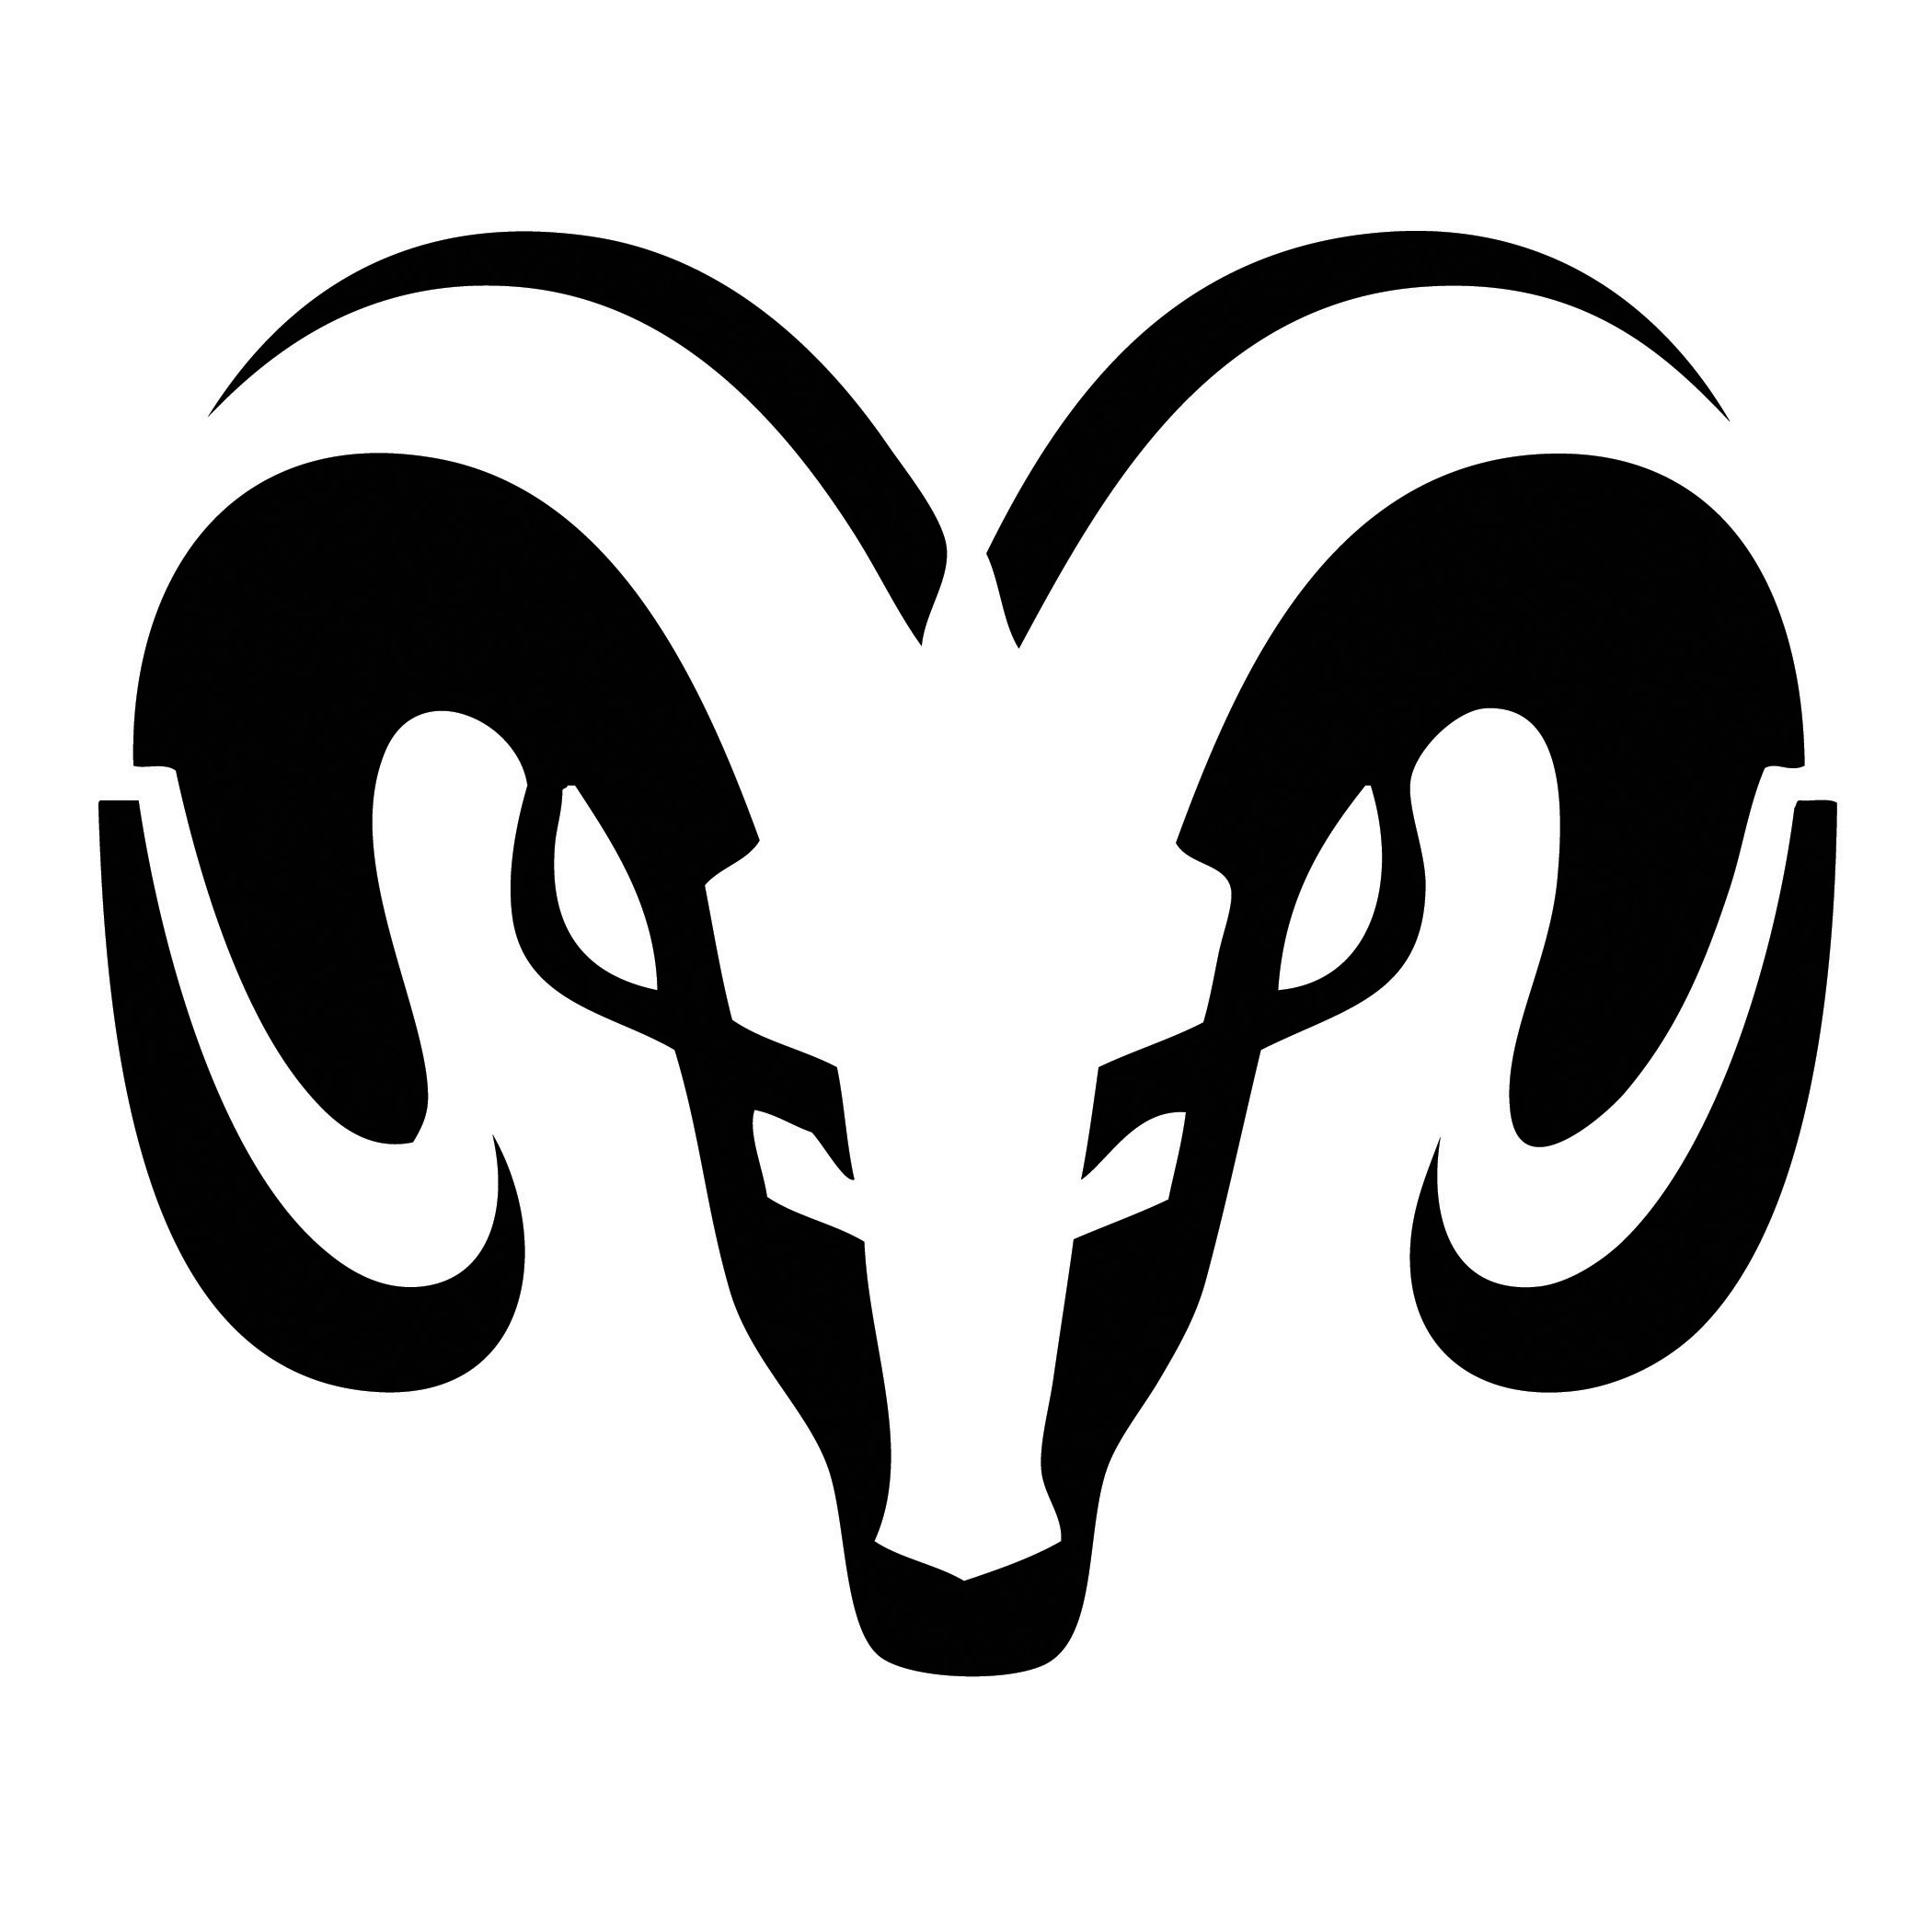 Ram logo wallpaper wallpapersafari